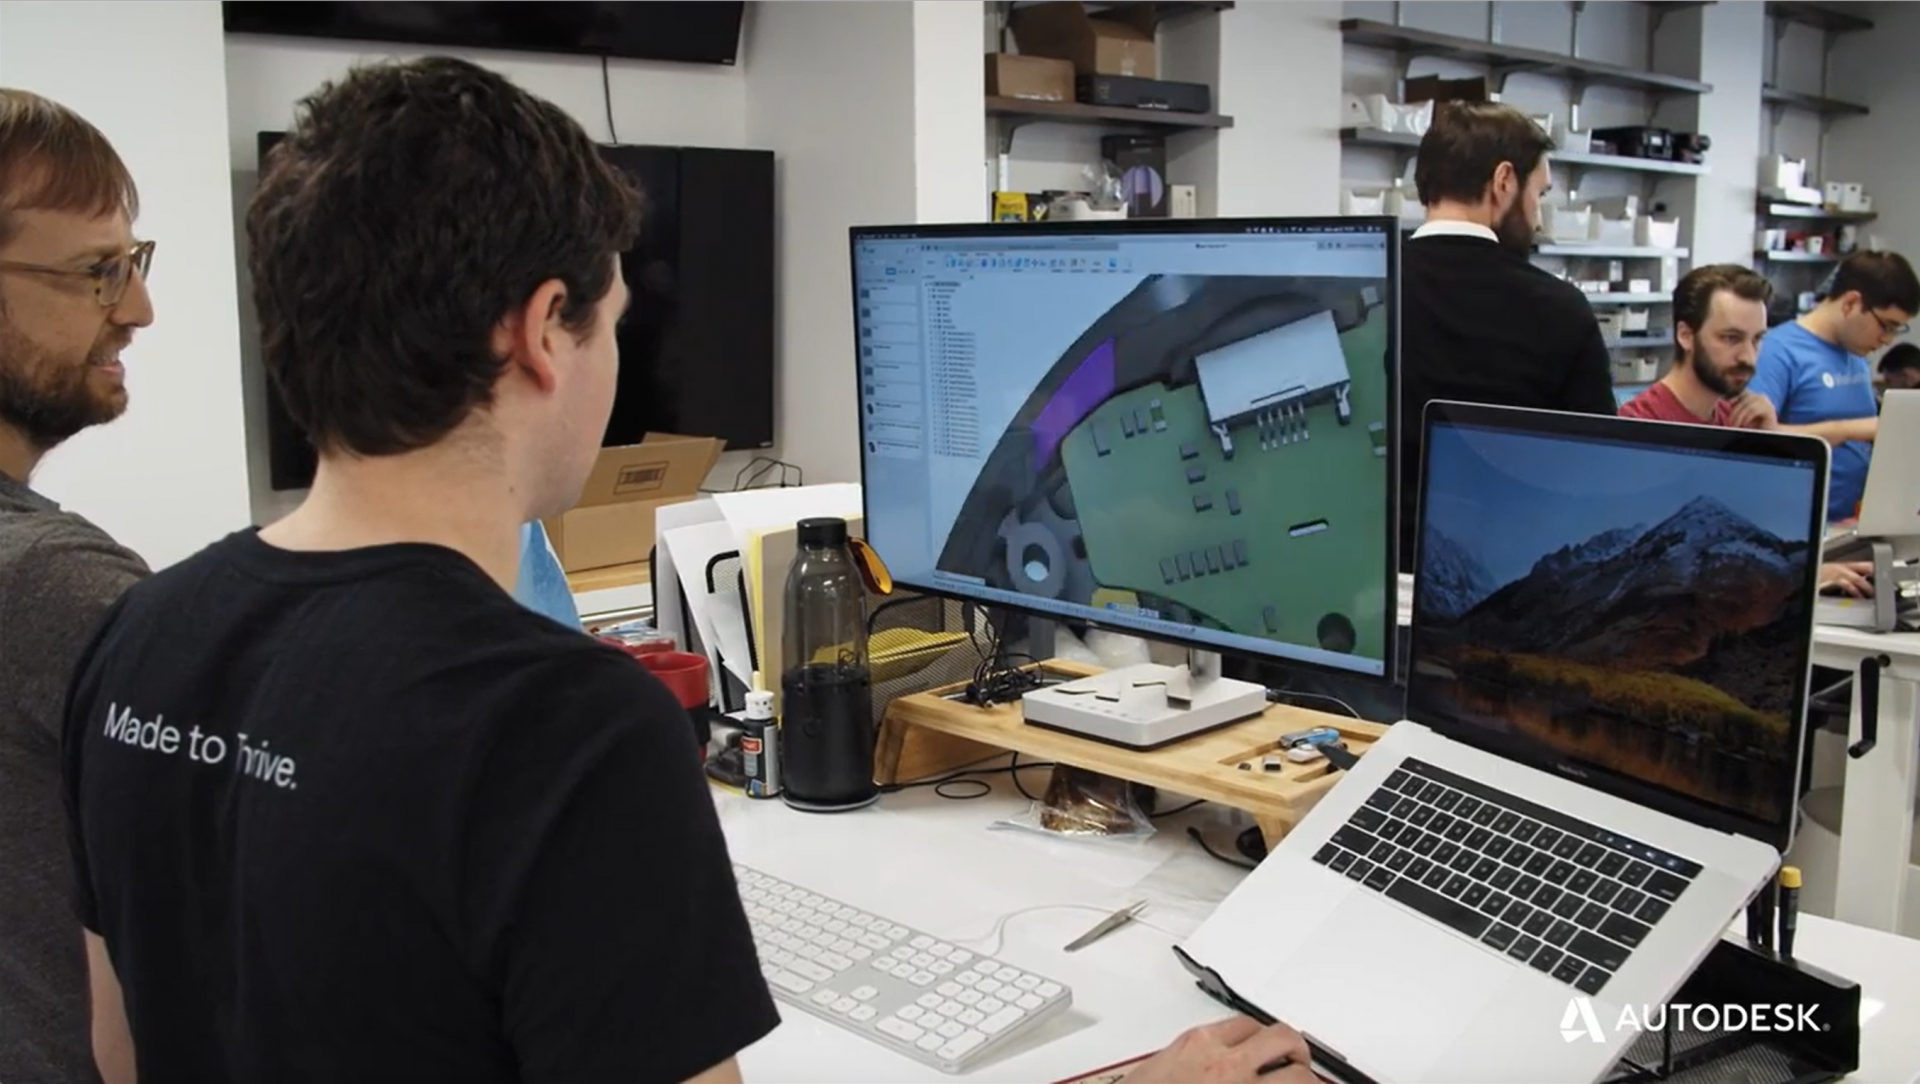 LifeFuels engineer verifying ECAD MCAD design using Fusion 360